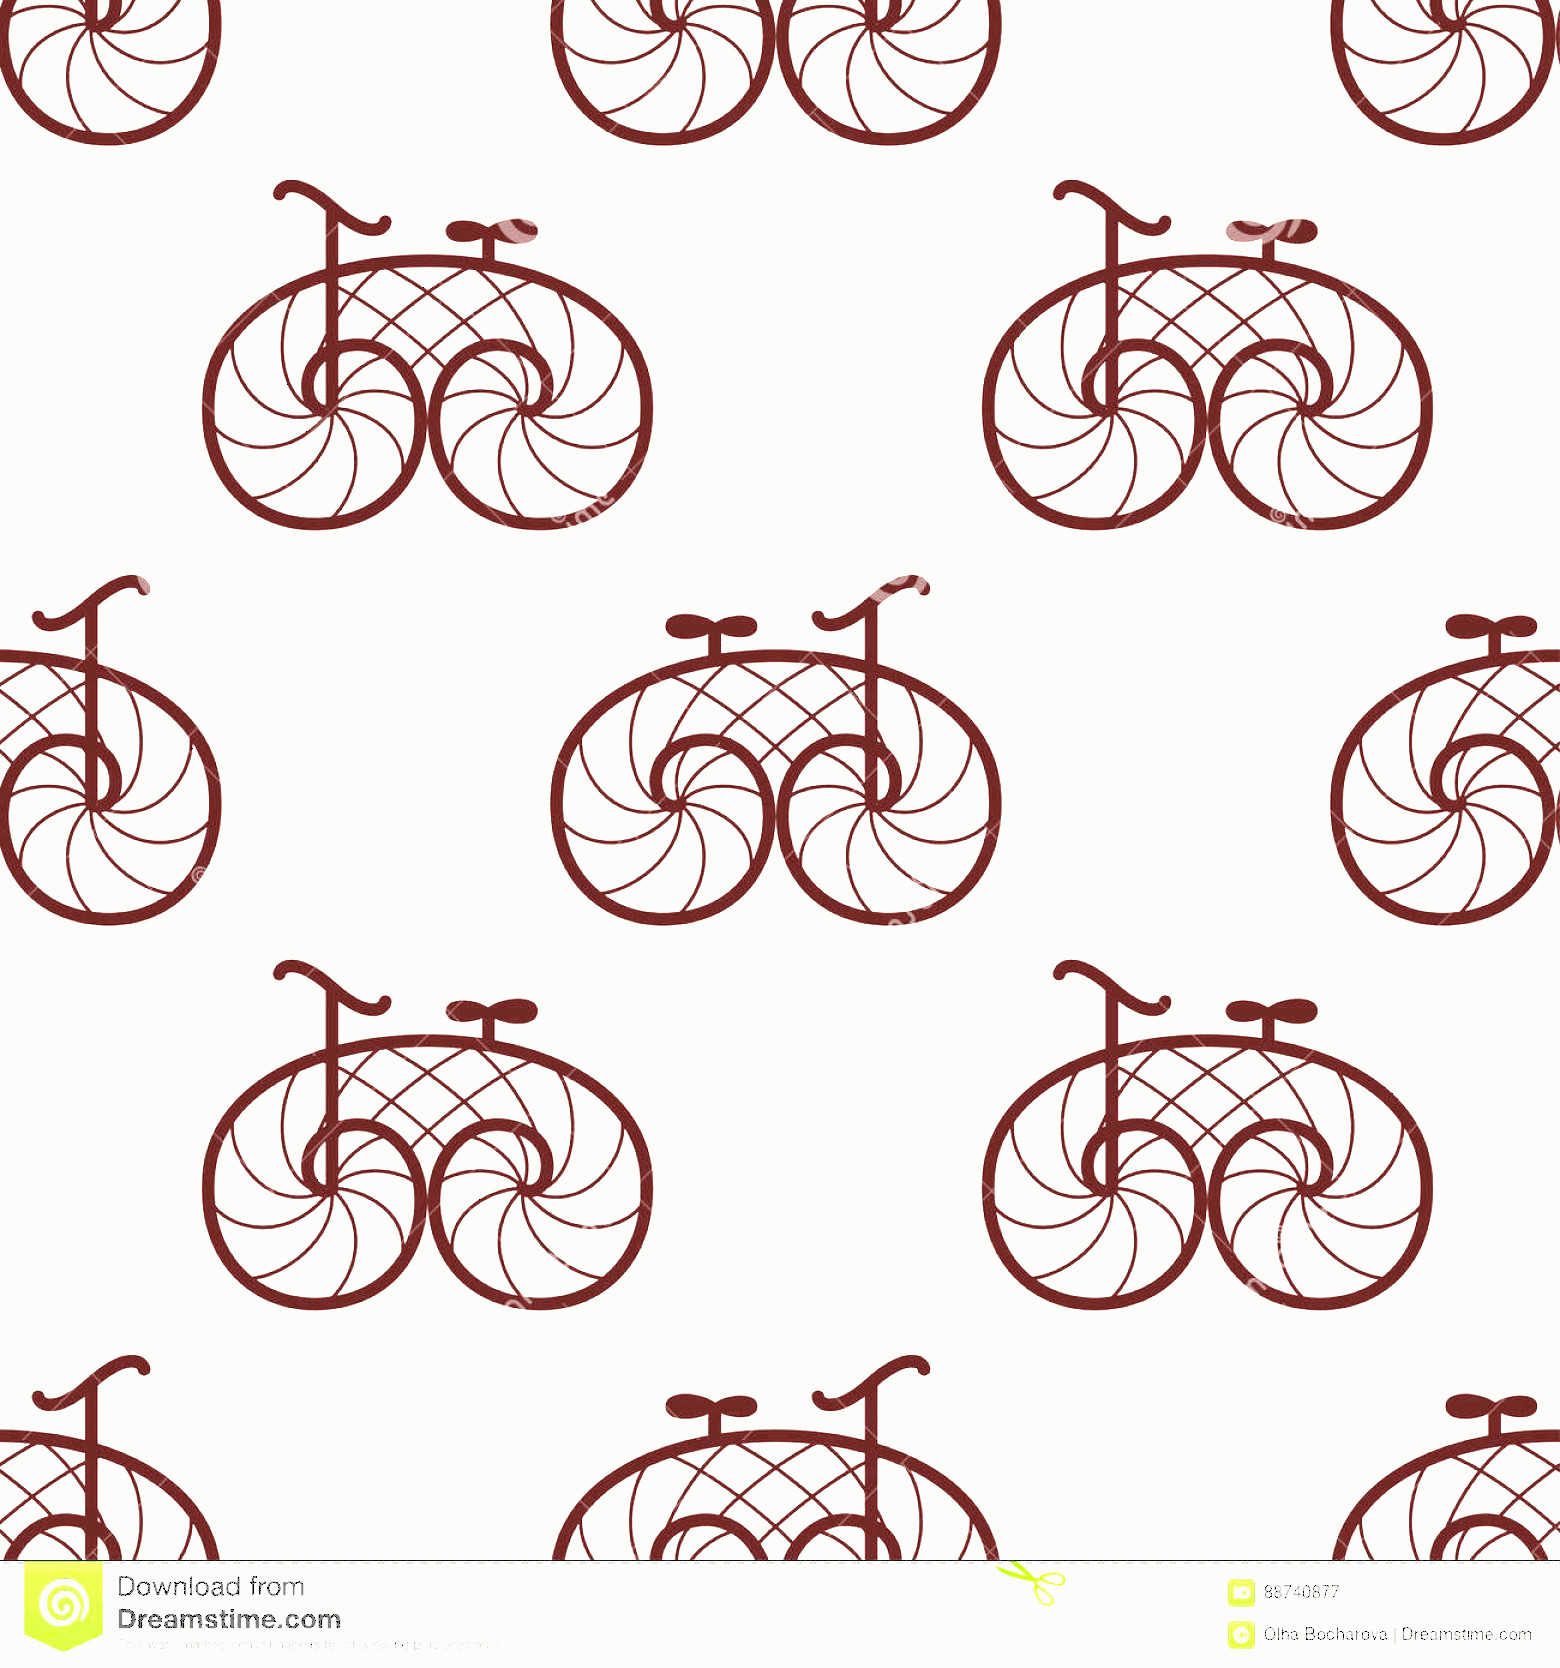 Bicycle Vector Artwork Of Patterns: Stock Illustration Seamless Pattern Retro Bicycle Vector Line Art Bike Design Image